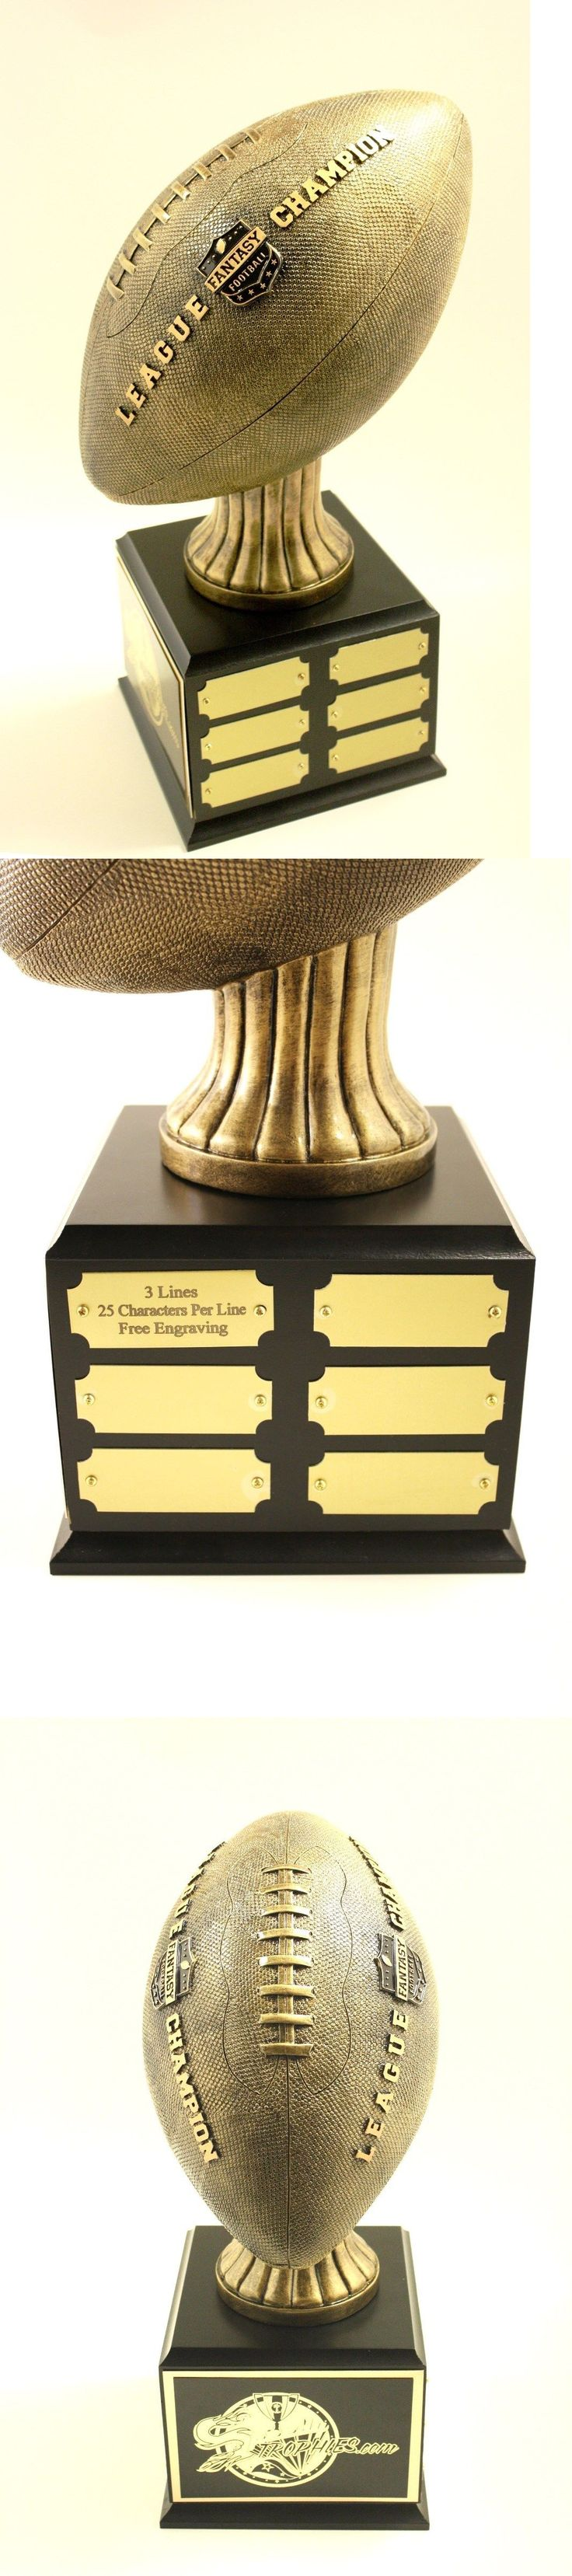 Other Football 2024: Fantasy Football Trophy 18 Year Perpetual- Free Engraving!!! Ships In 1 Day!! -> BUY IT NOW ONLY: $94.99 on eBay!